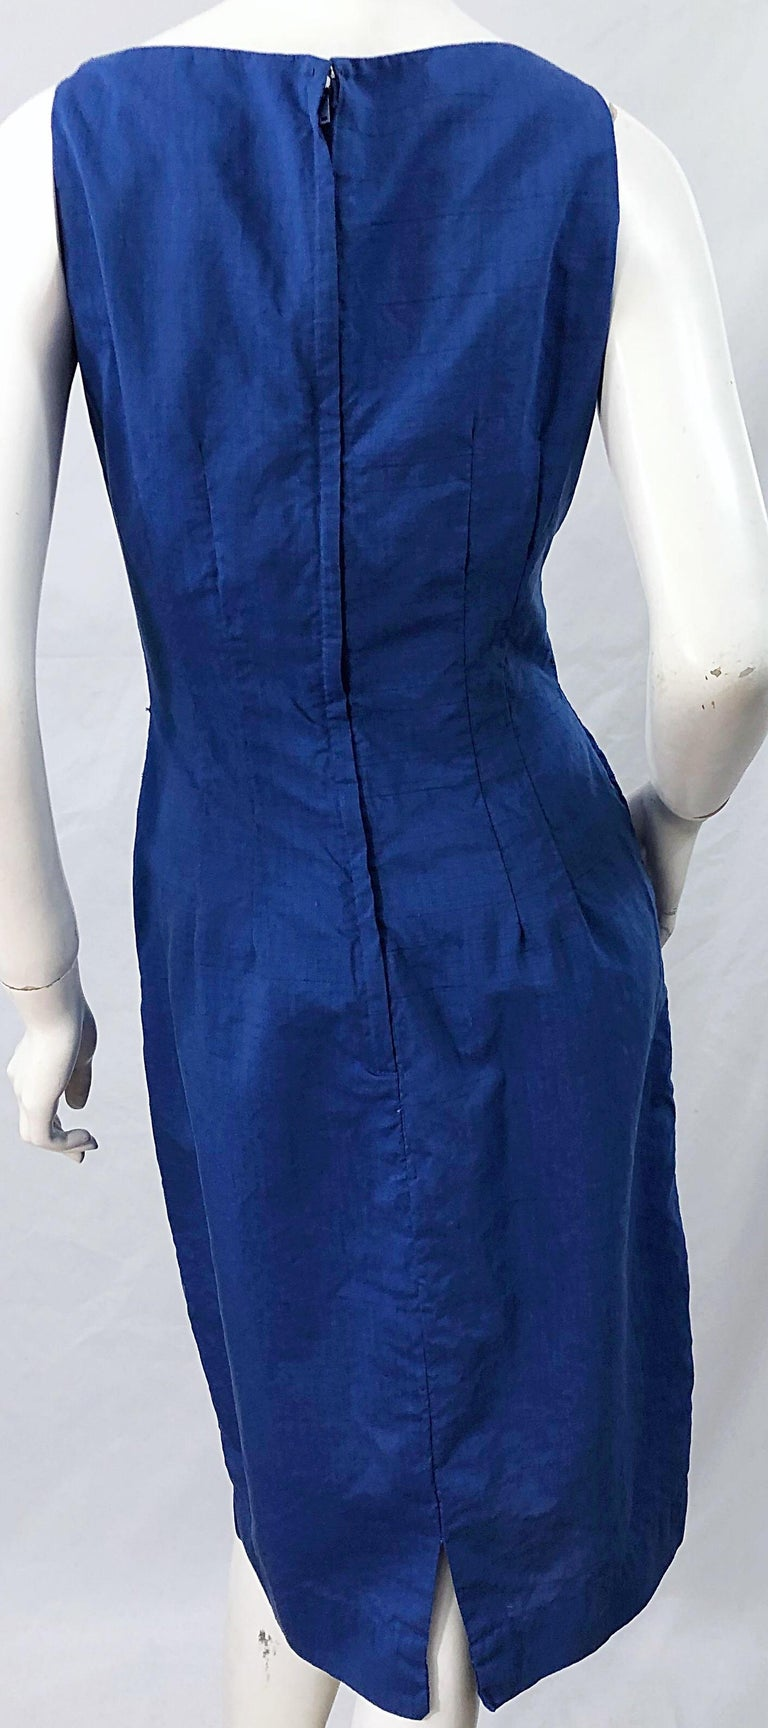 Chic 1950s Cobalt Blue Cotton High Neck Vintage 50s Sleeveless Wiggle Dress For Sale 6